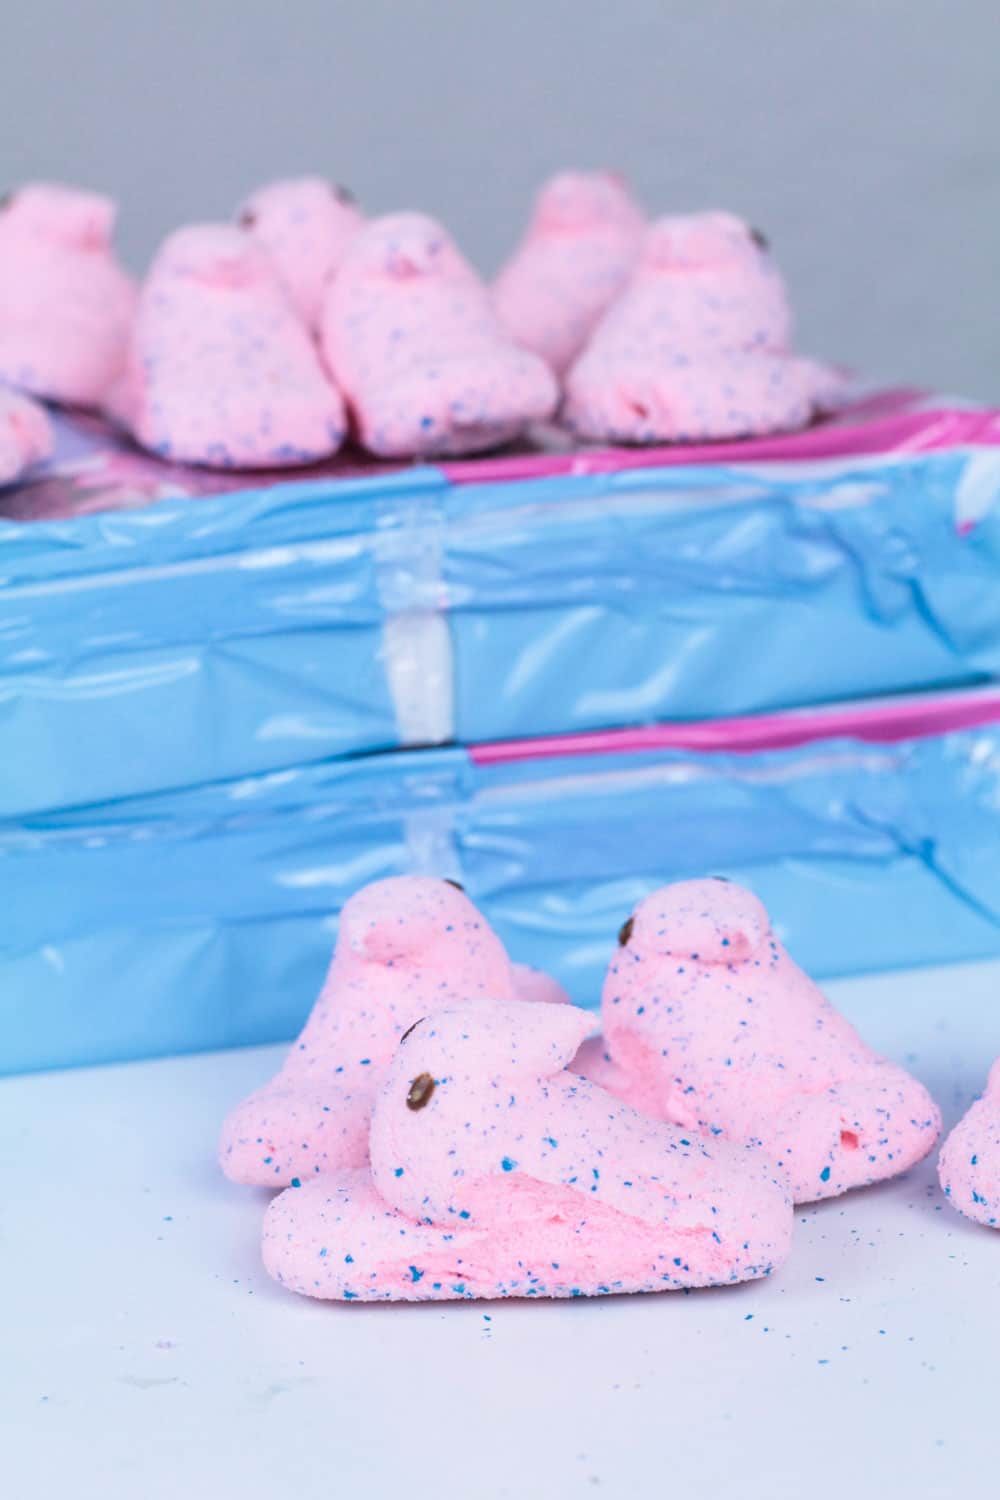 Love Peeps? Love slime? Make this edible Peeps slime recipe for Easter! This recipe for Peeps slime is the perfect Easter slime recipe and makes the perfect edible slime recipe that is a borax free slime and safe for all ages!